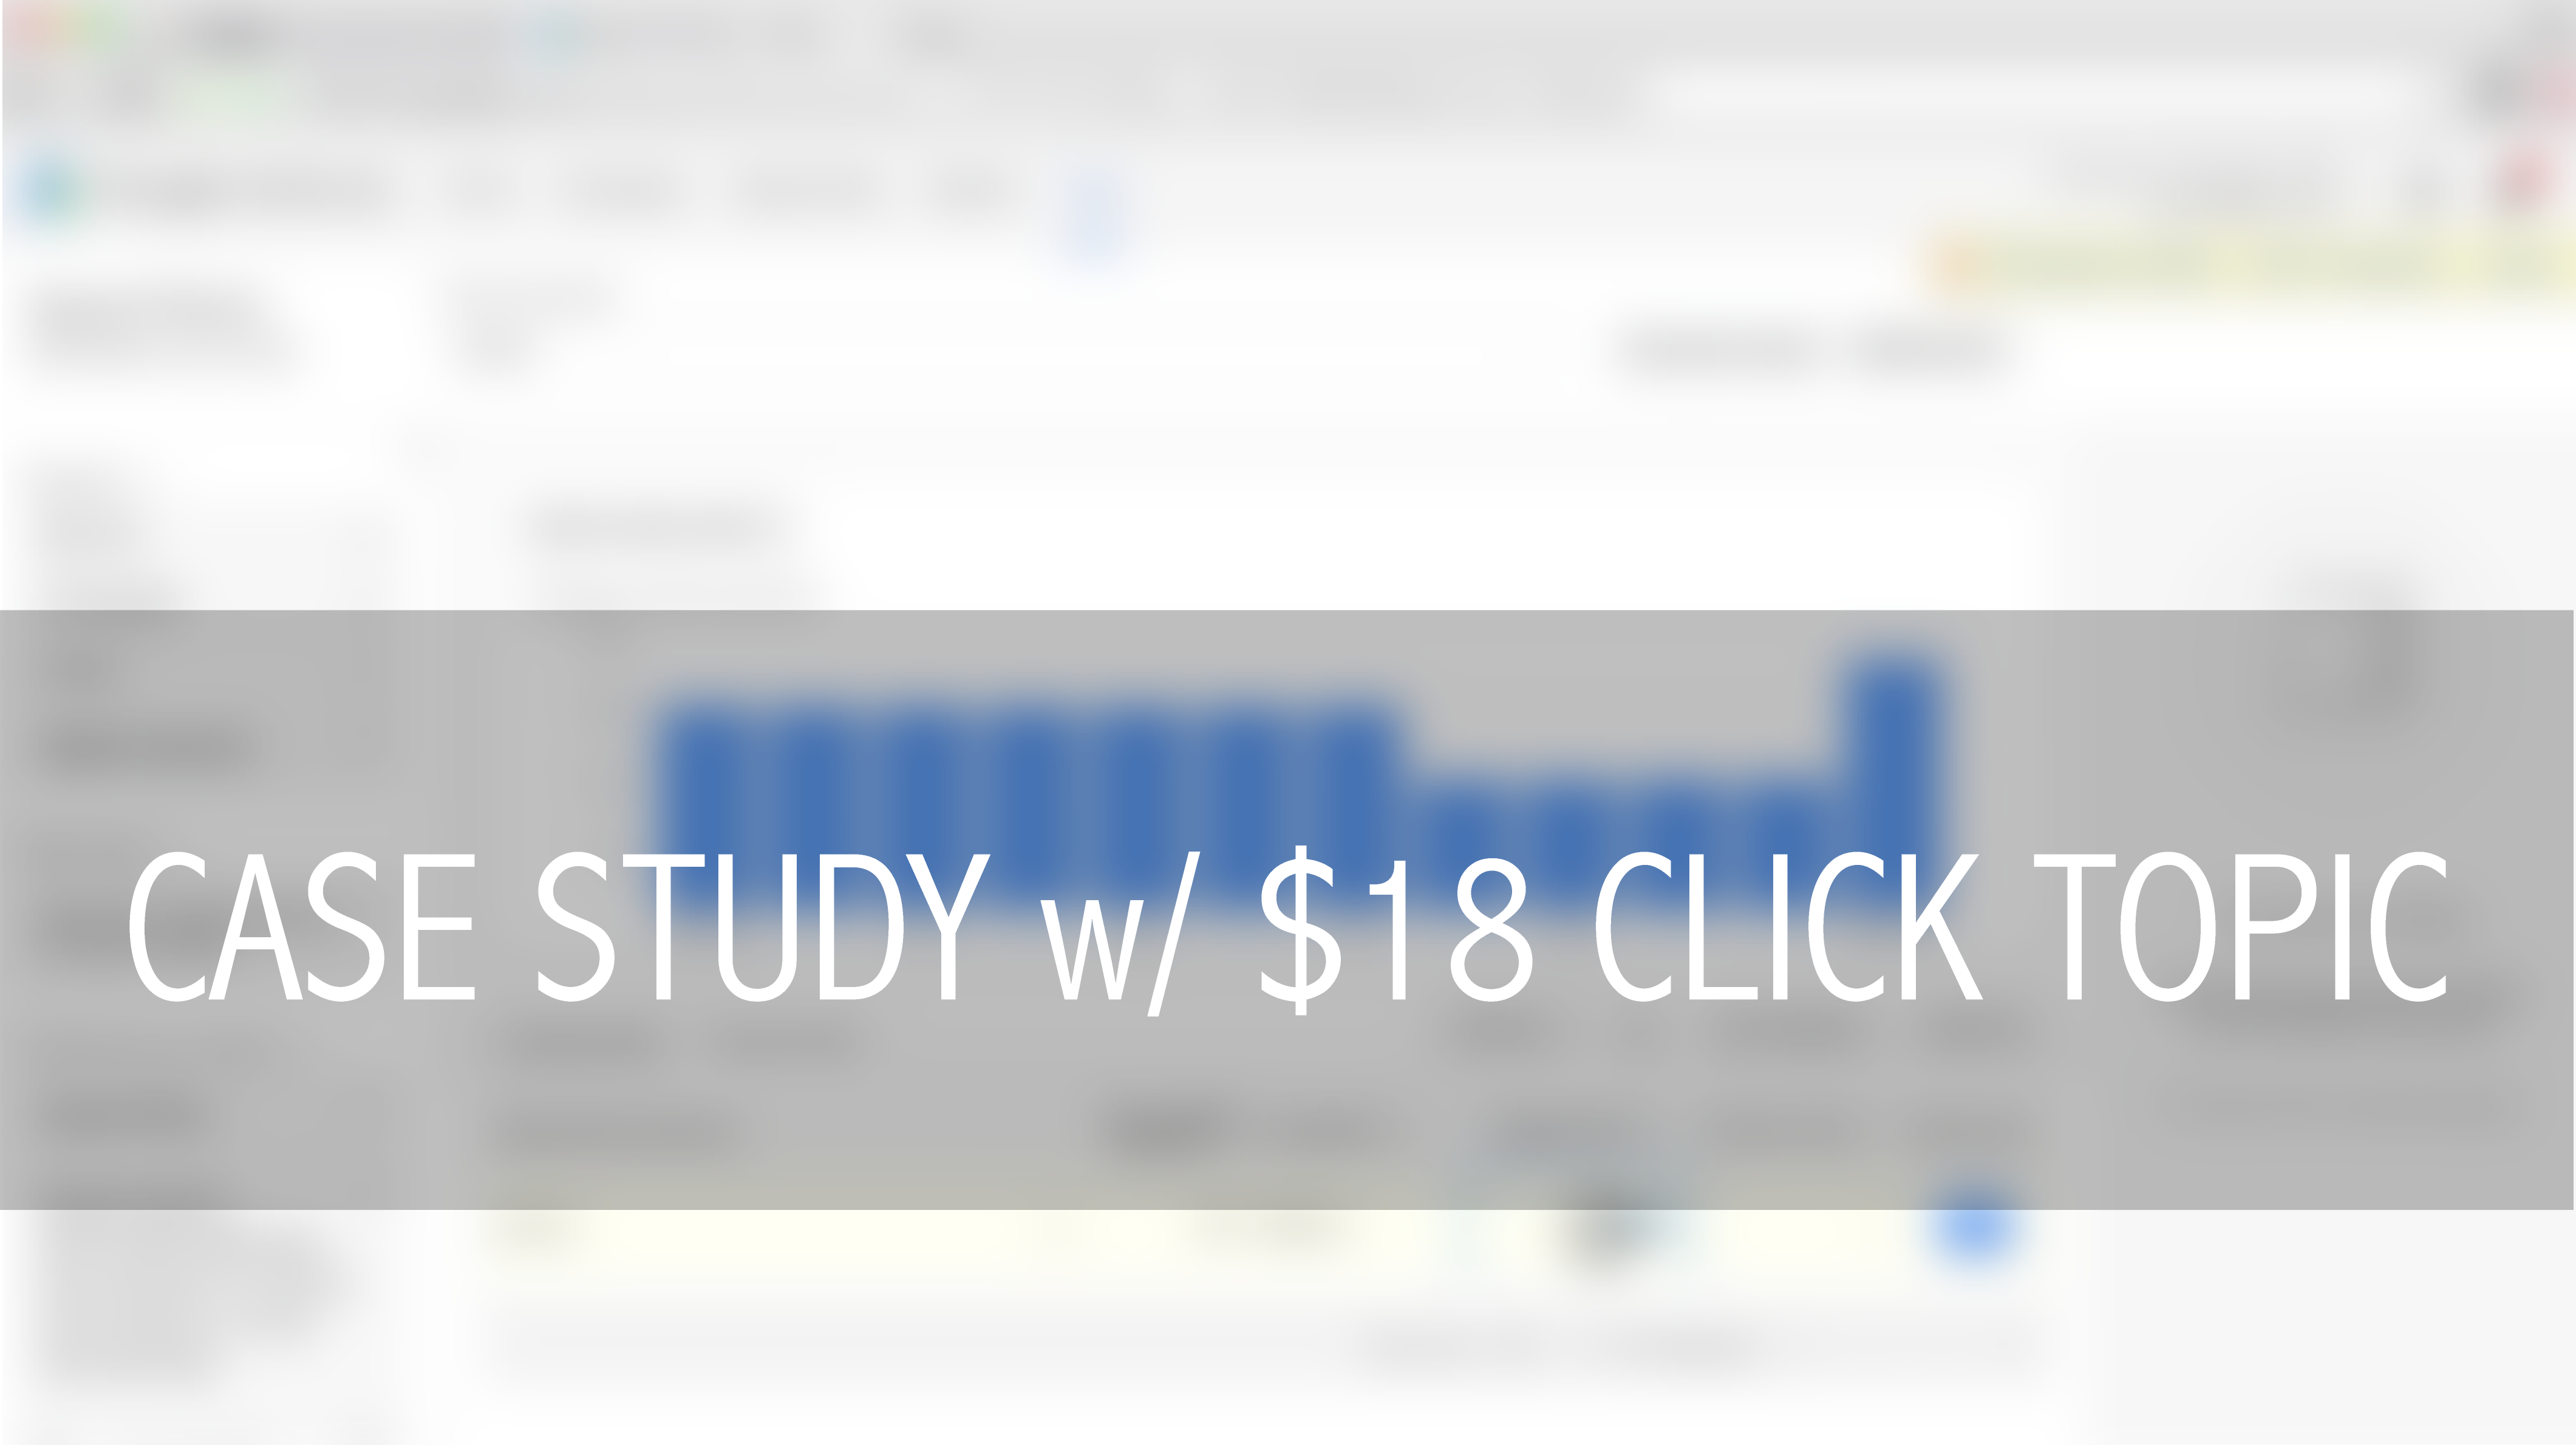 Case Study with $18.00 Clic...